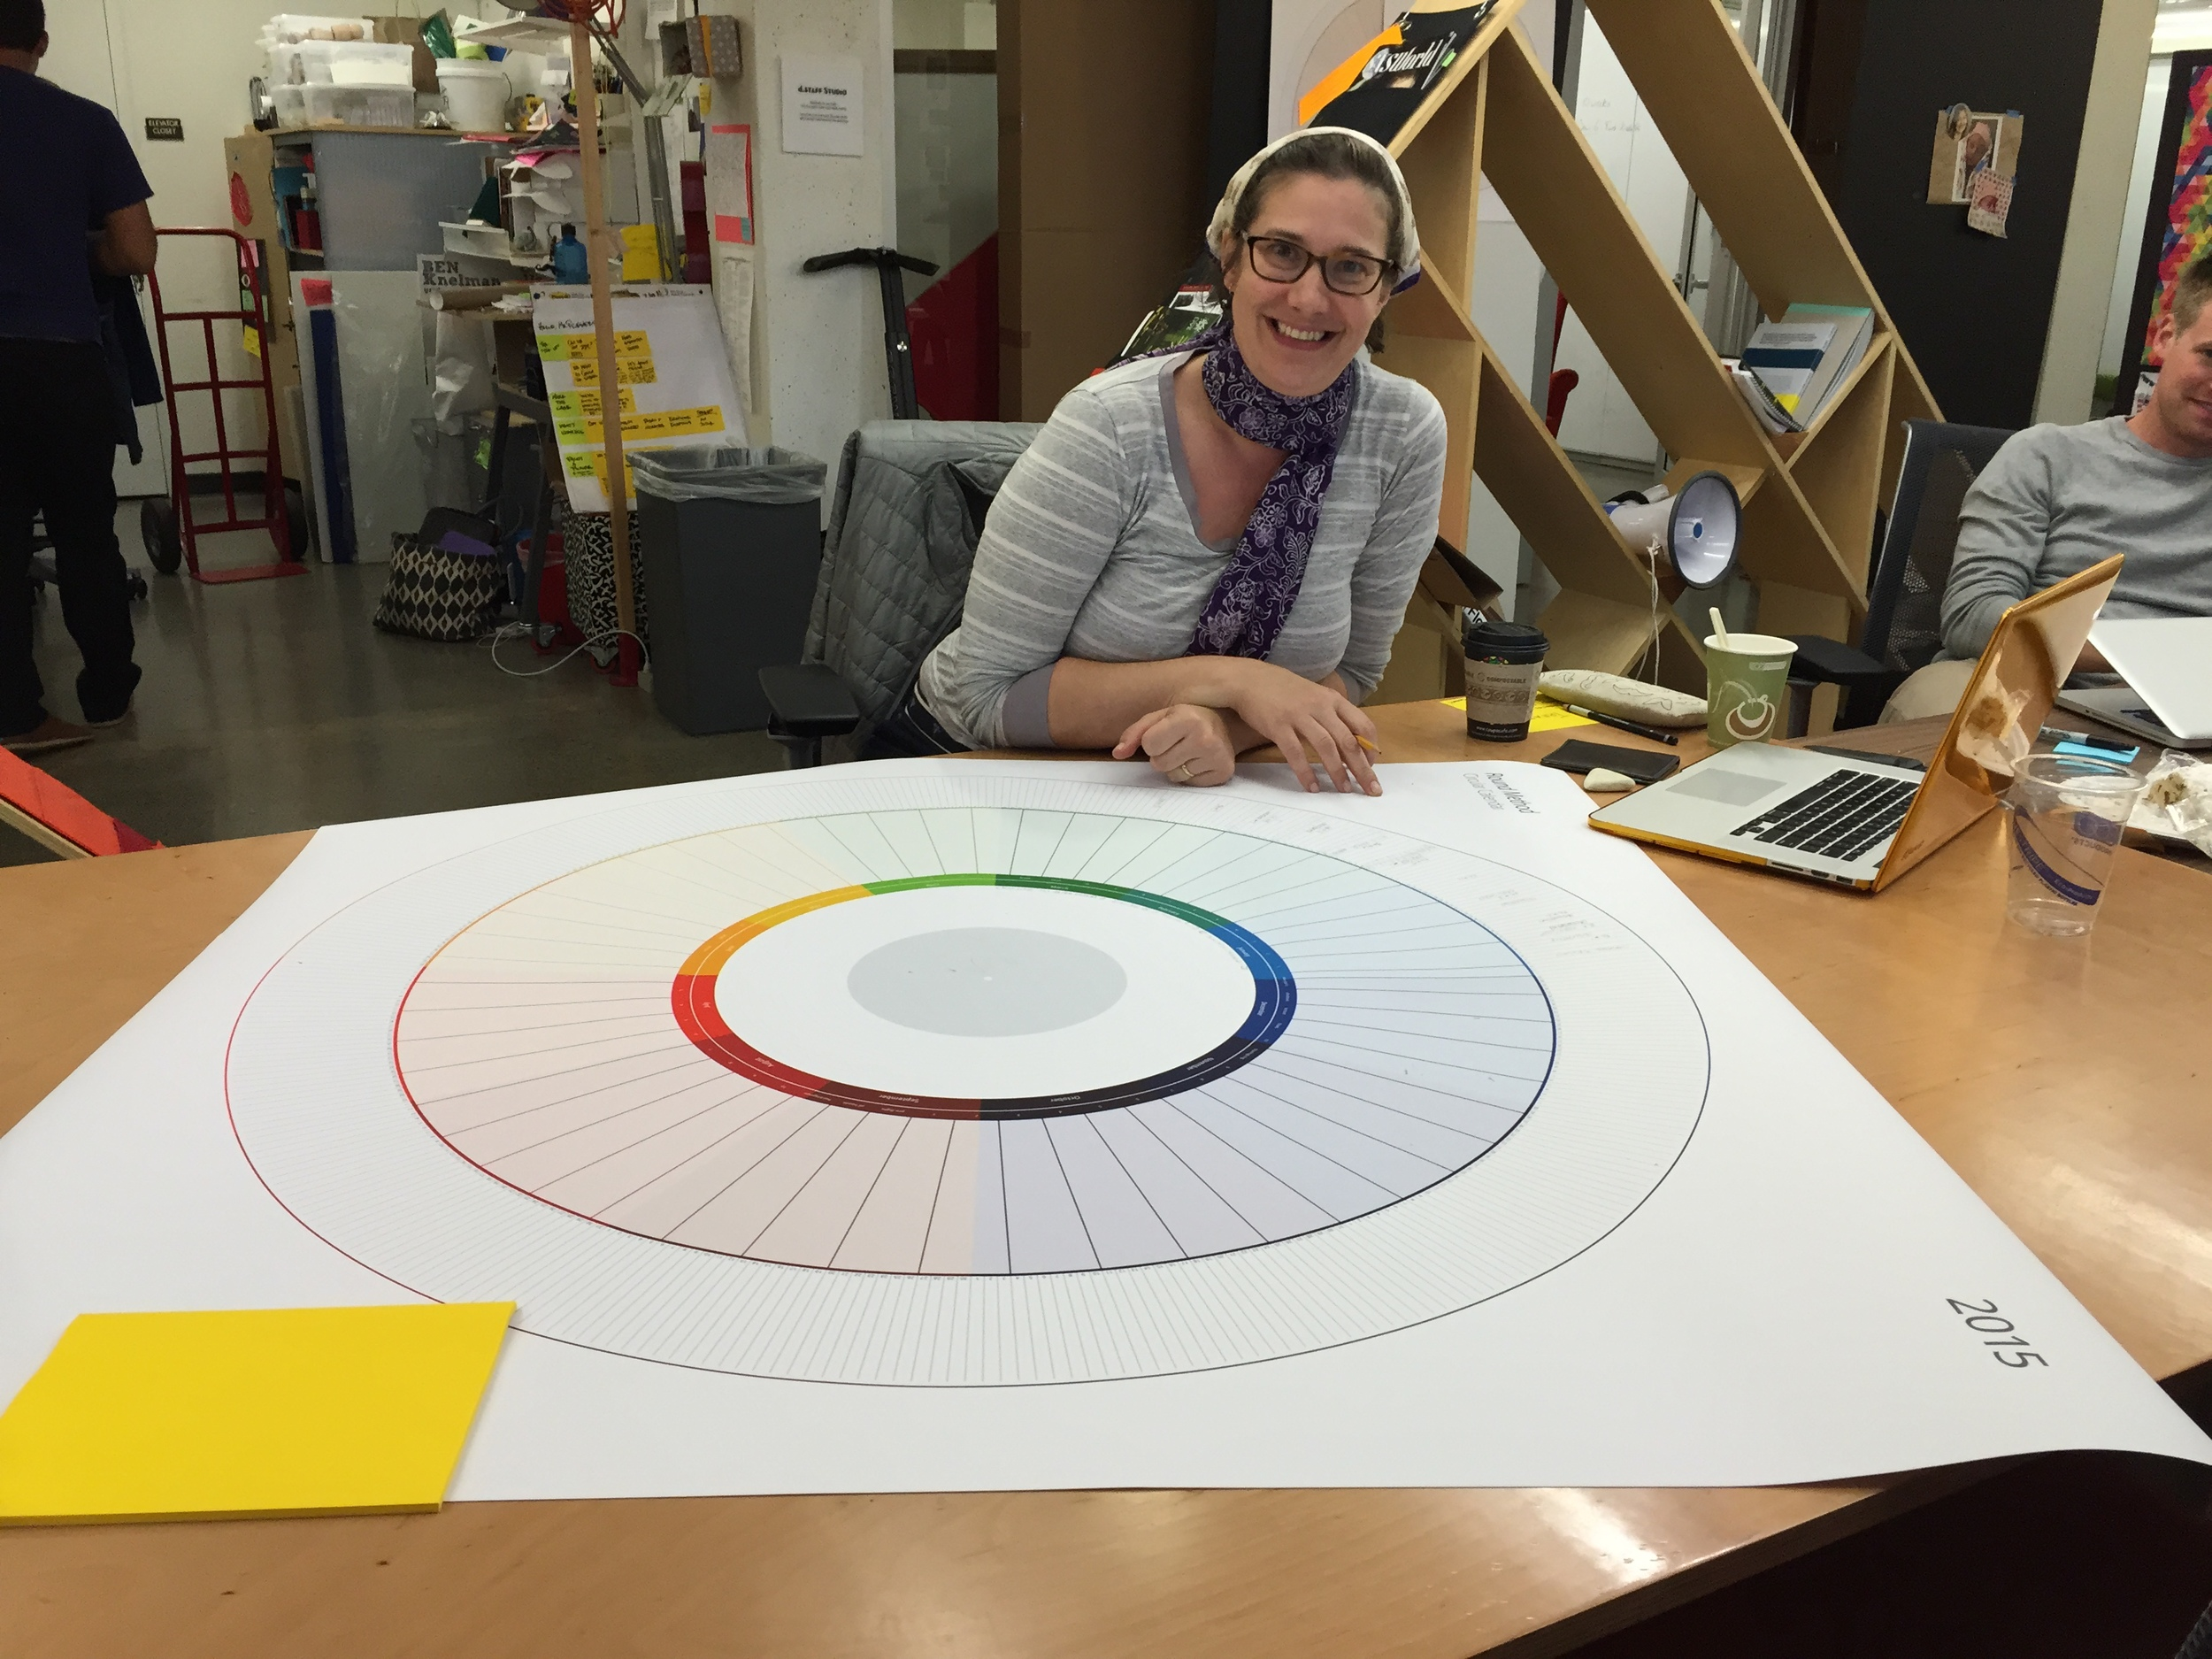 Charlotte begins planning for the year with a Round Method calendar she modified for her own personal schedule. (Emi Kolawole)